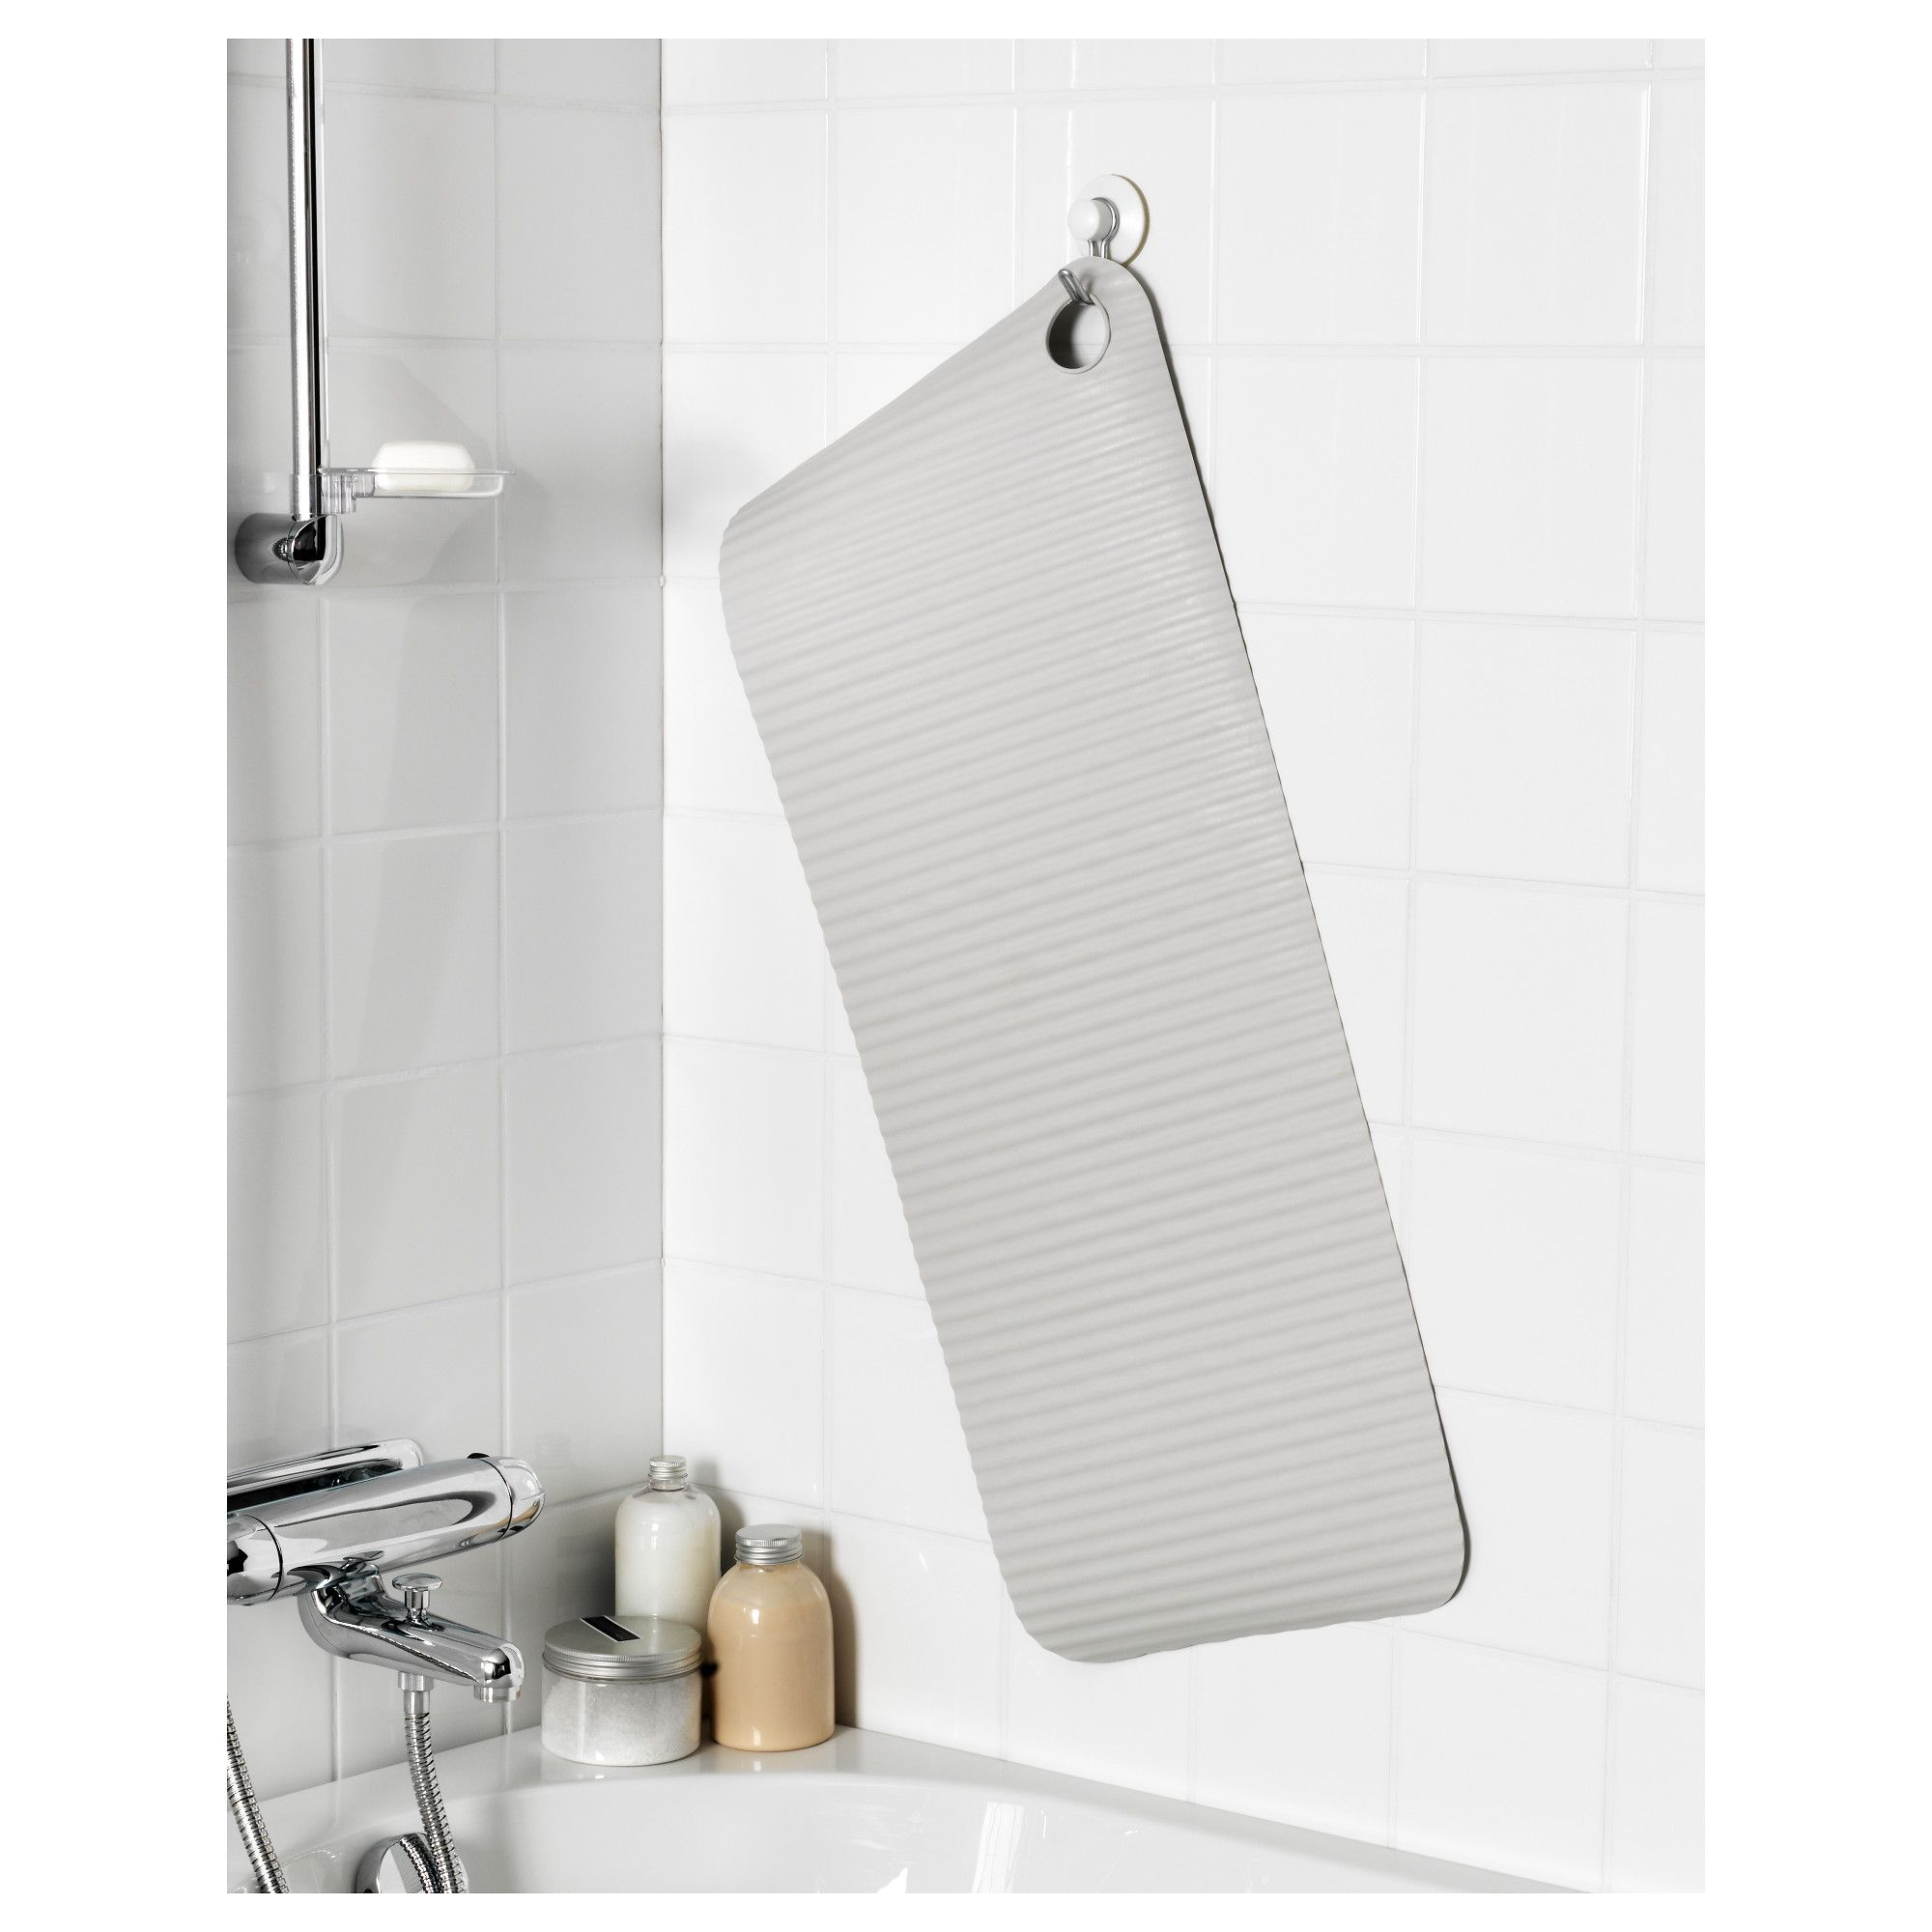 IKEA   DOPPA, Bathtub Mat, Suction Cups Keep The Mat Safely In Place In  Your Bathtub Or Shower.You Can Keep The Mat Clean And Fresh Longer By  Hanging It Up ...